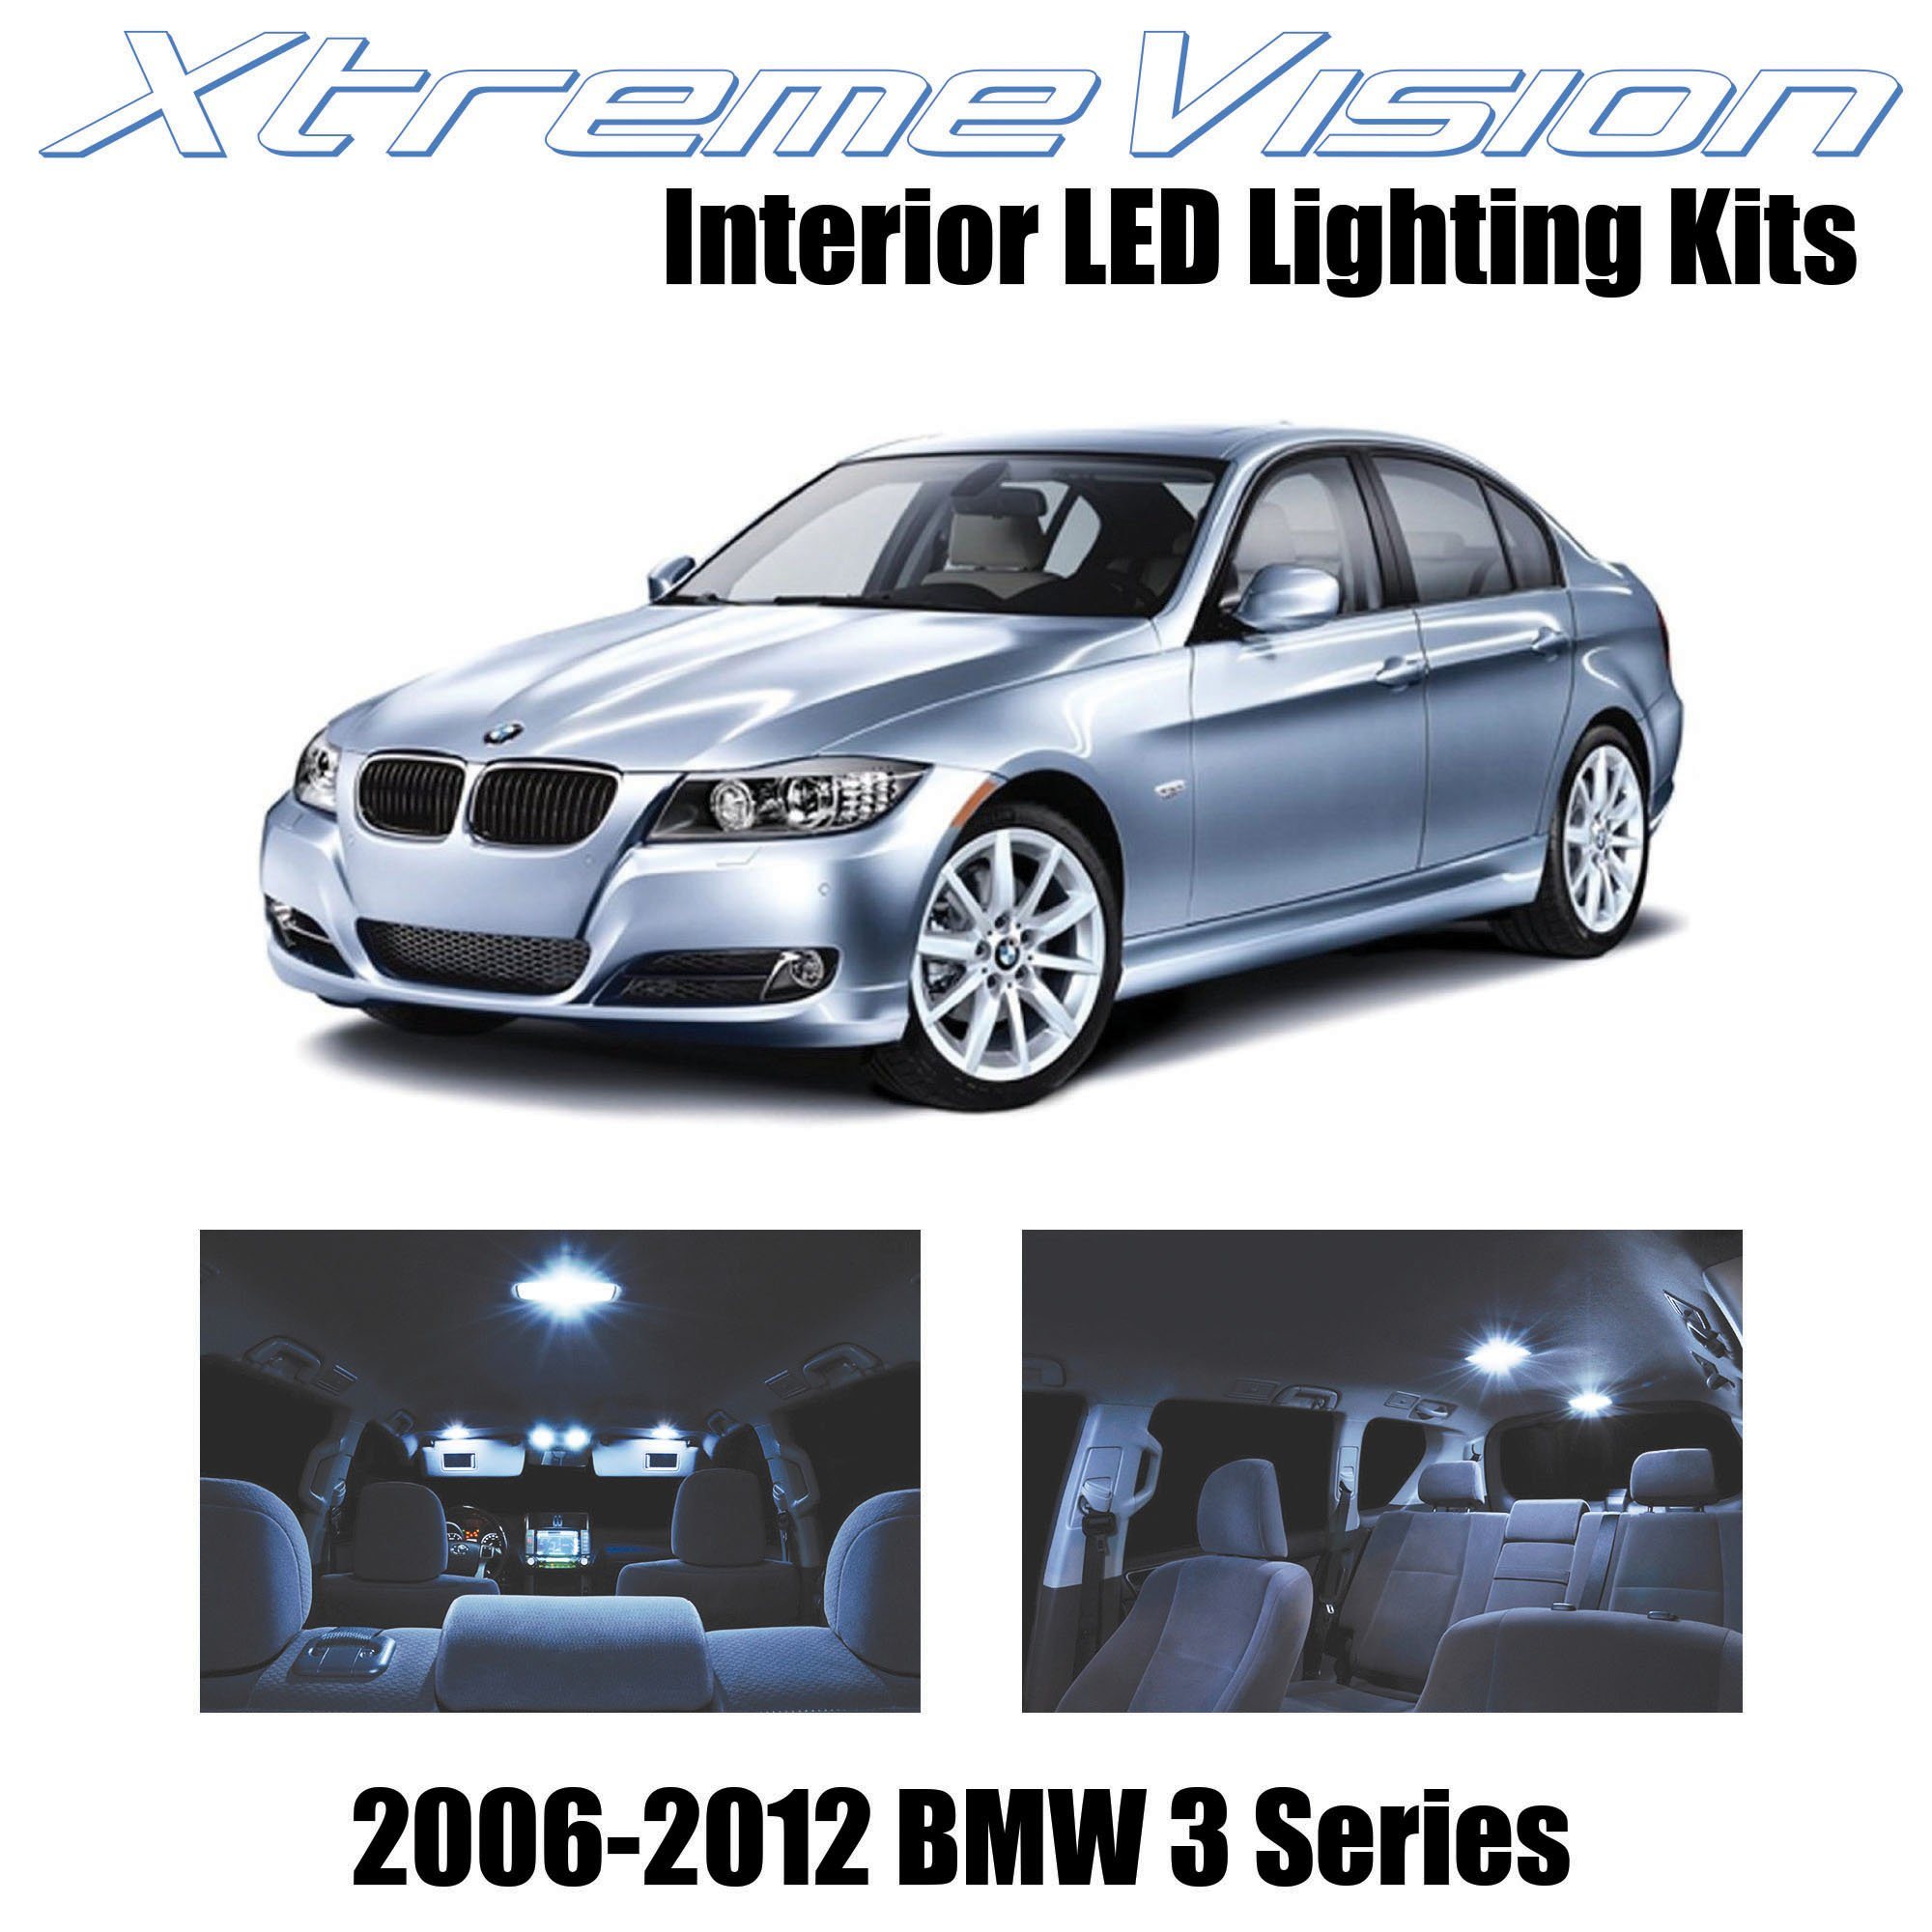 Xtremevision Interior LED for BMW 3 Series E90 E92 M3 2006-2012 (18 Pieces) Cool White Interior LED Kit + Installation Tool